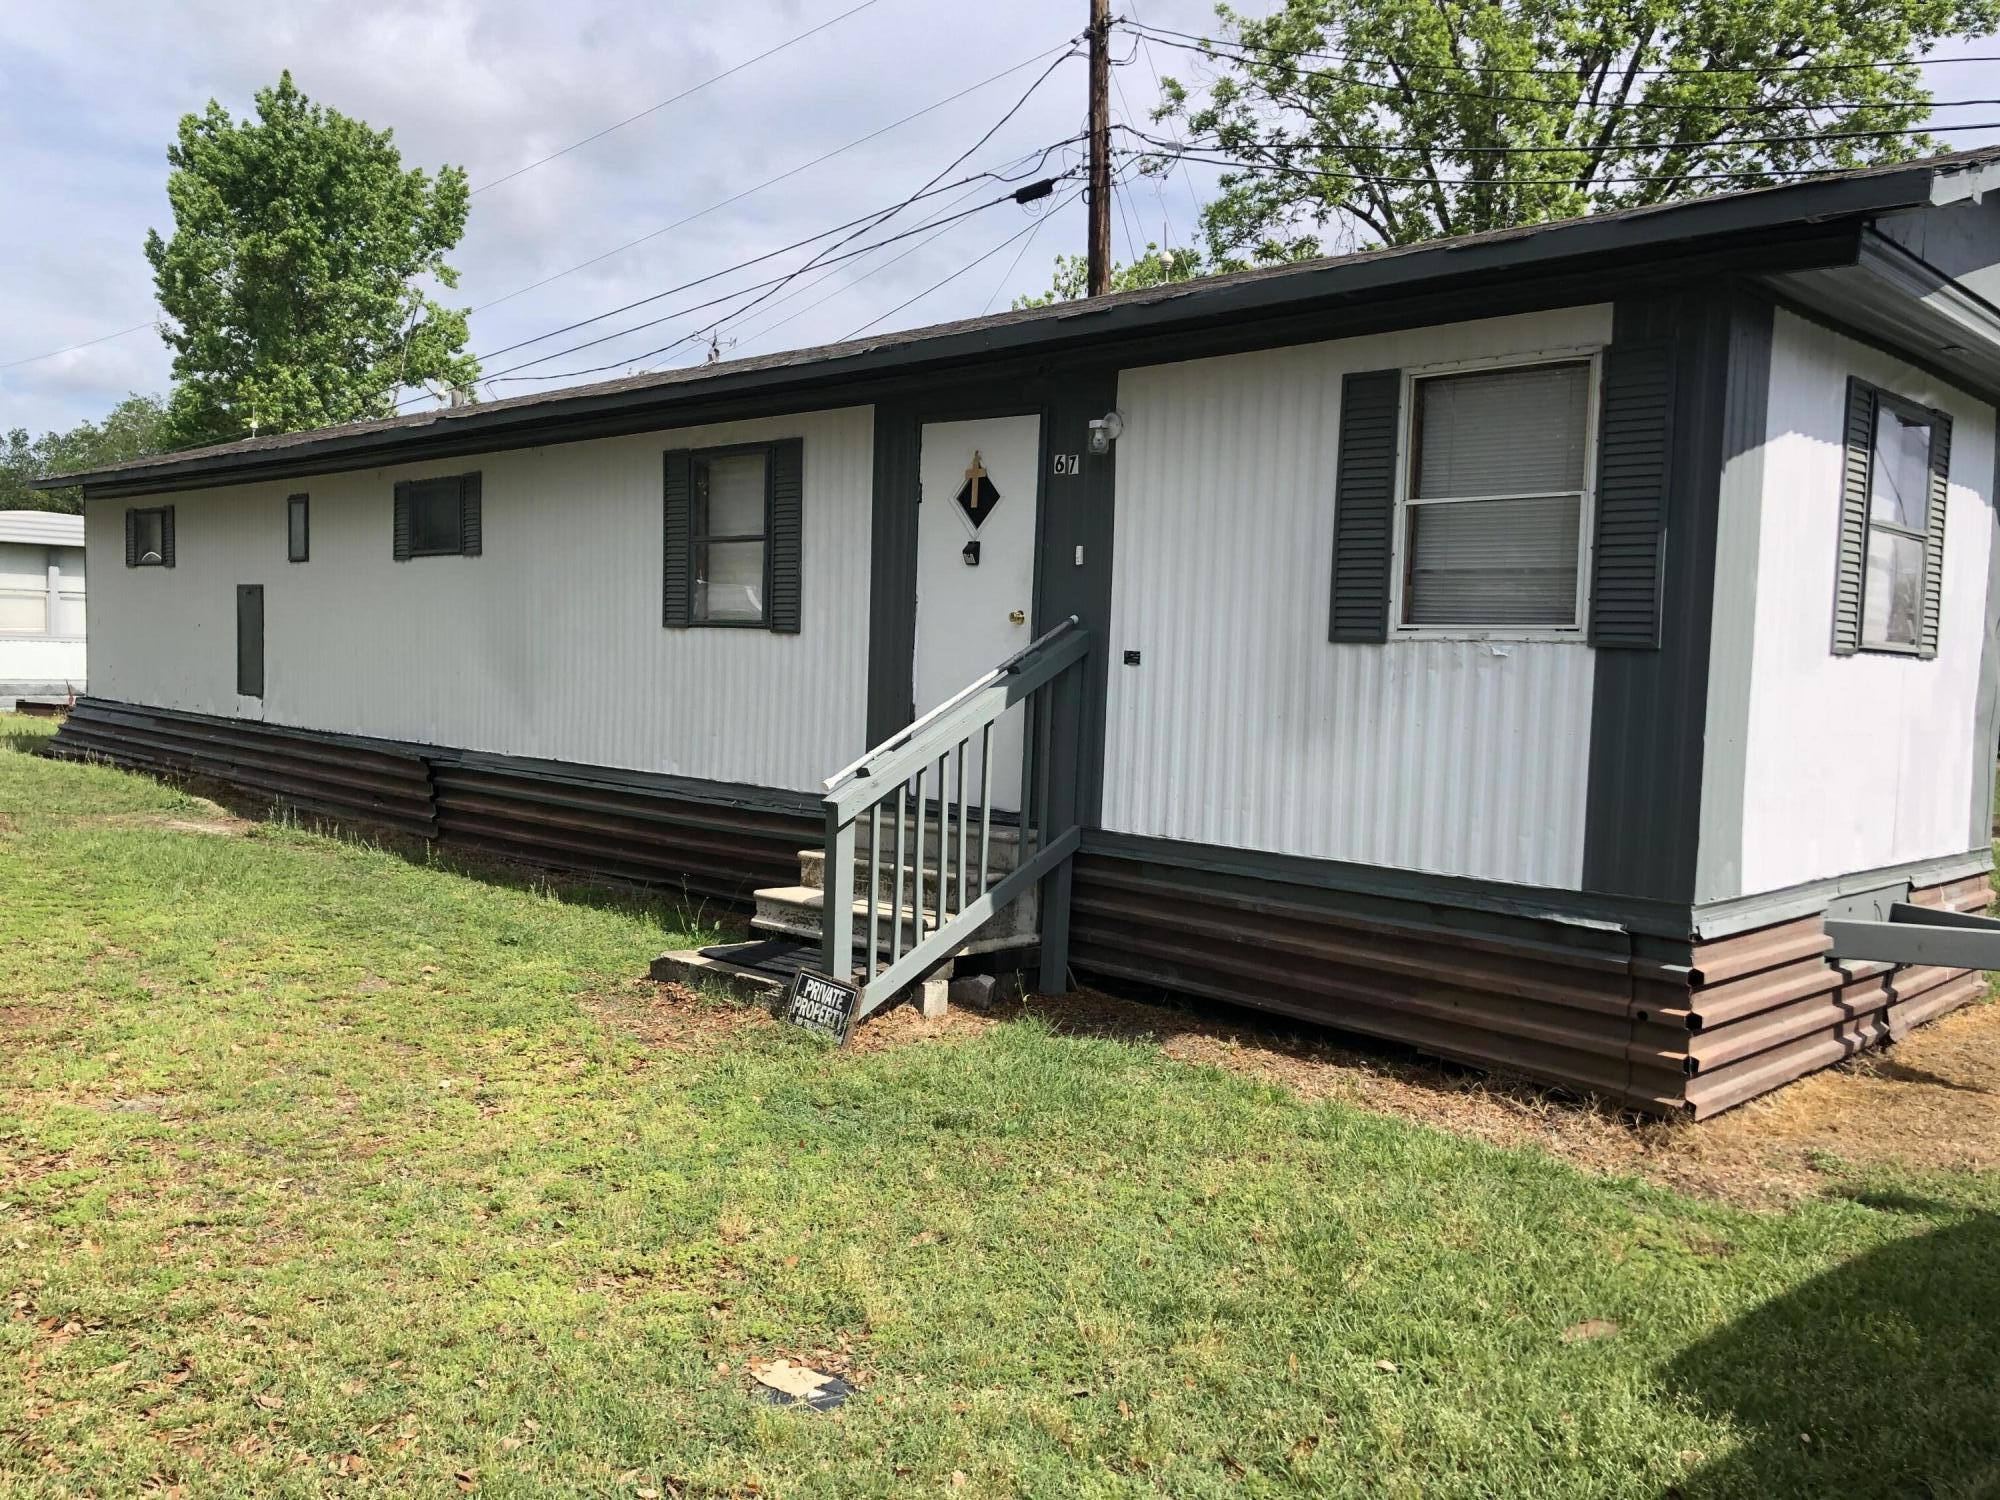 529 Williamsburg County Highway, Kingstree, 29556, ,MultiFamily,For Sale,Williamsburg County,21011052